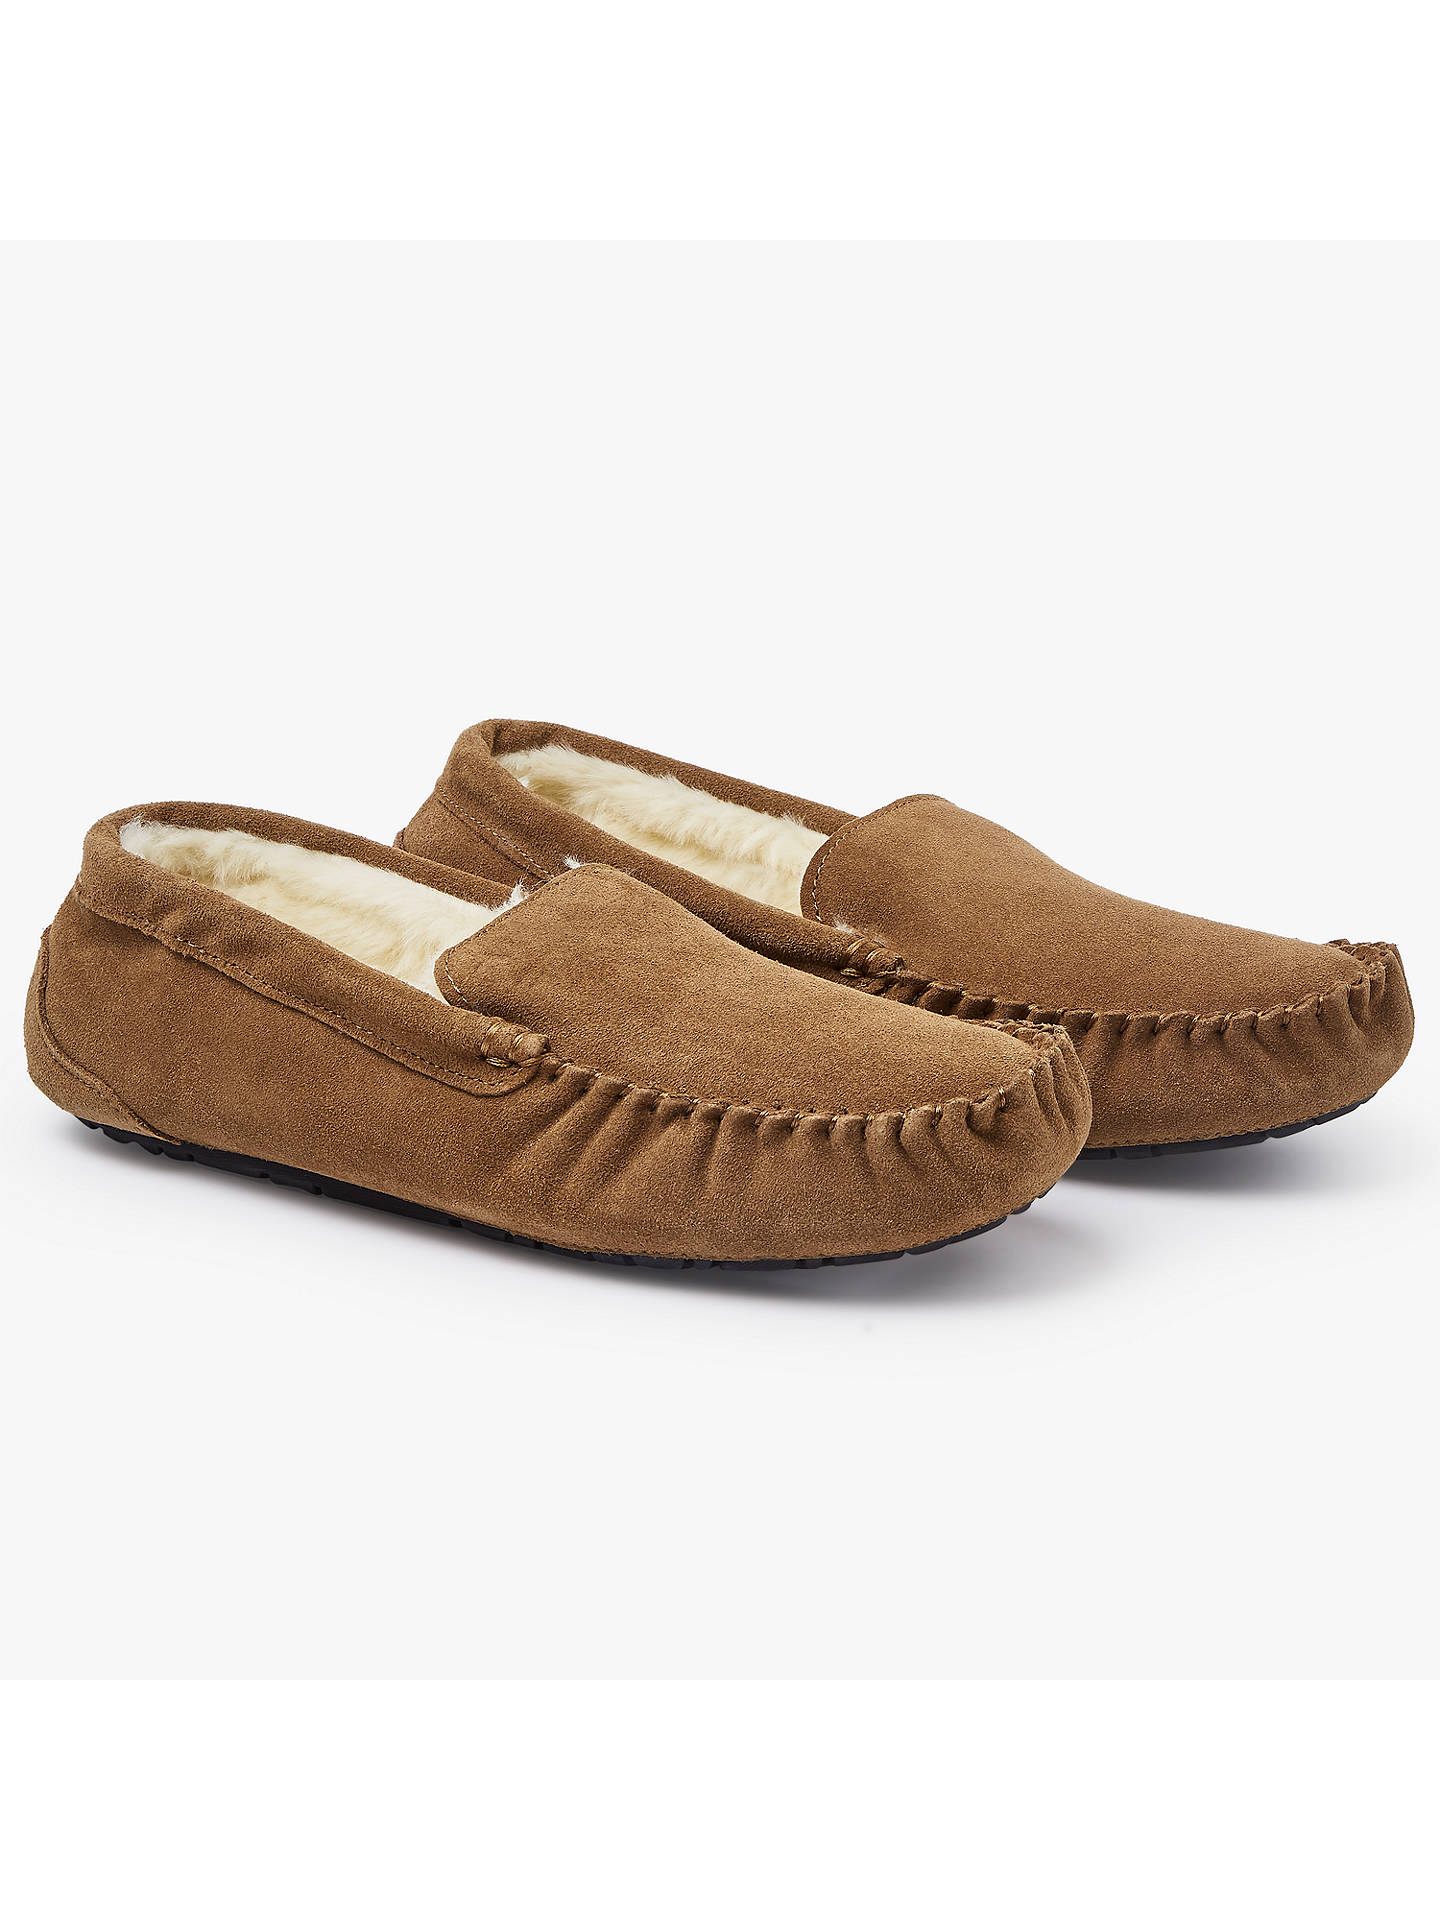 Lewis Chocolate Moccasin Clothing, Shoes & Accessories